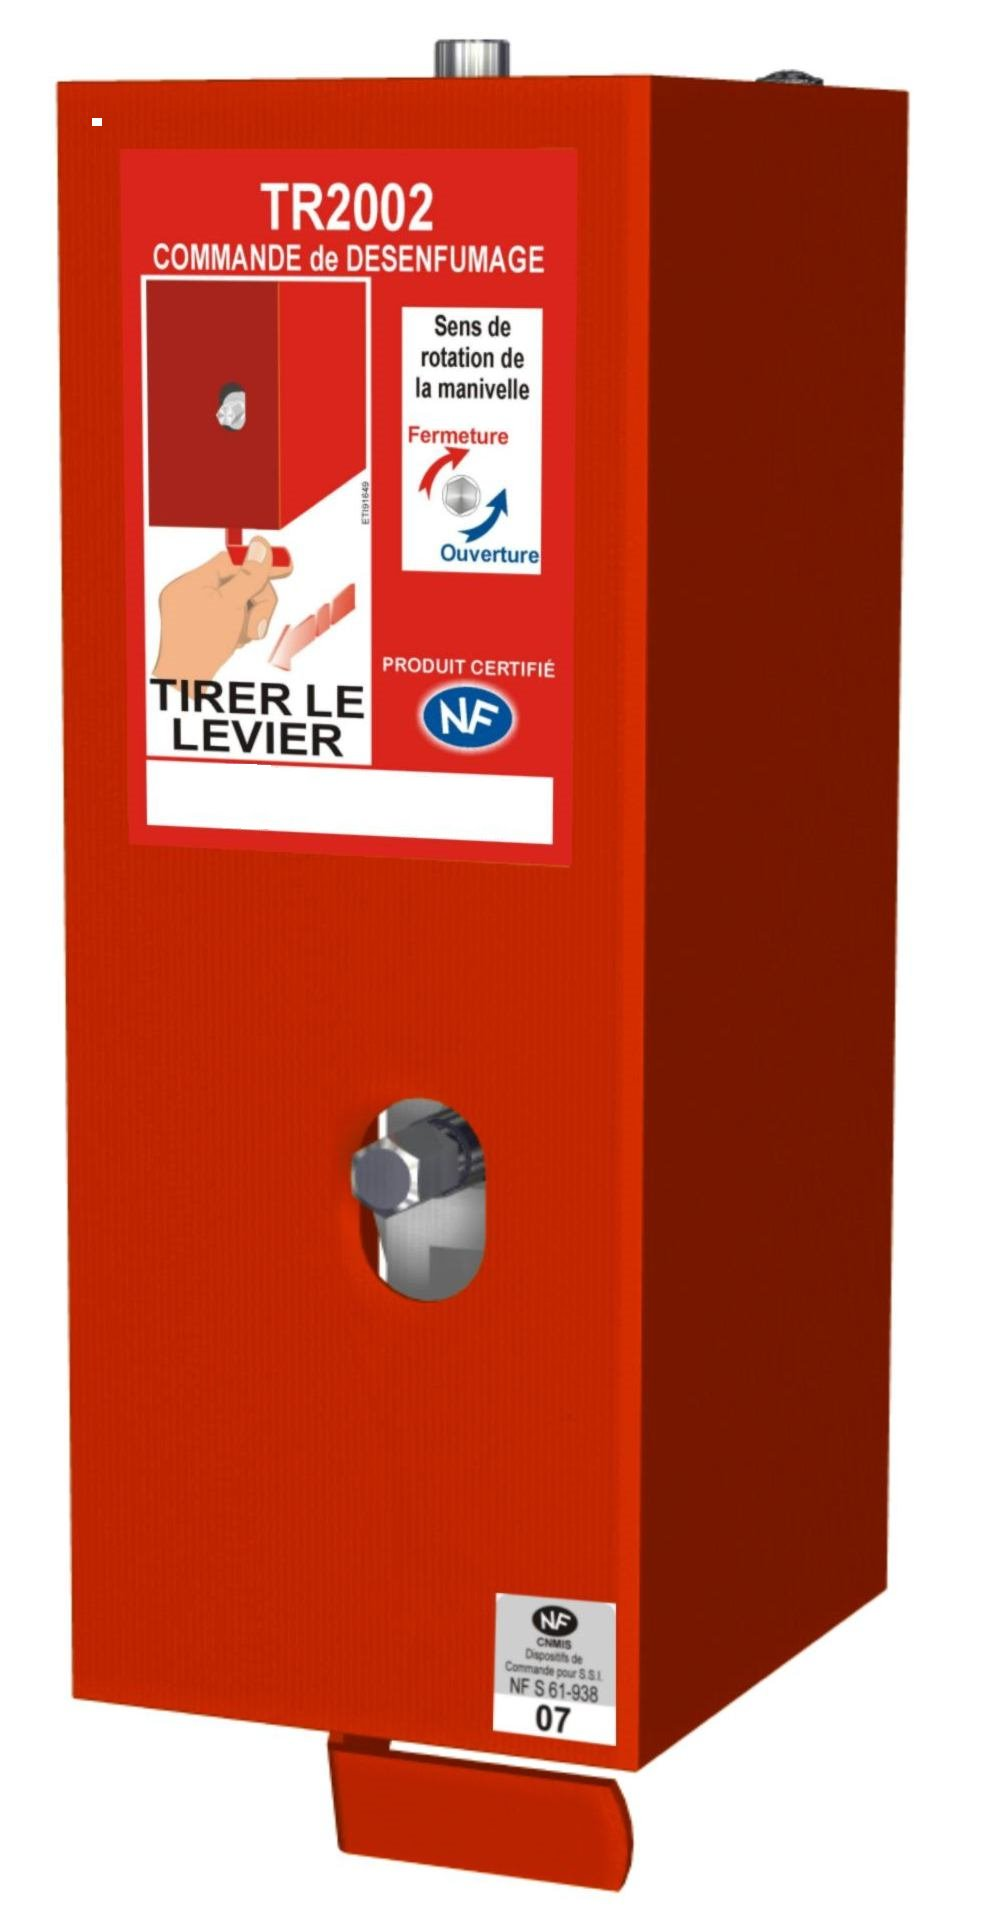 TR2002 - Treuil modulaire certifié NF avec déclencheur rouge et manivelle - NF certified modular winch with red release handle and cranck